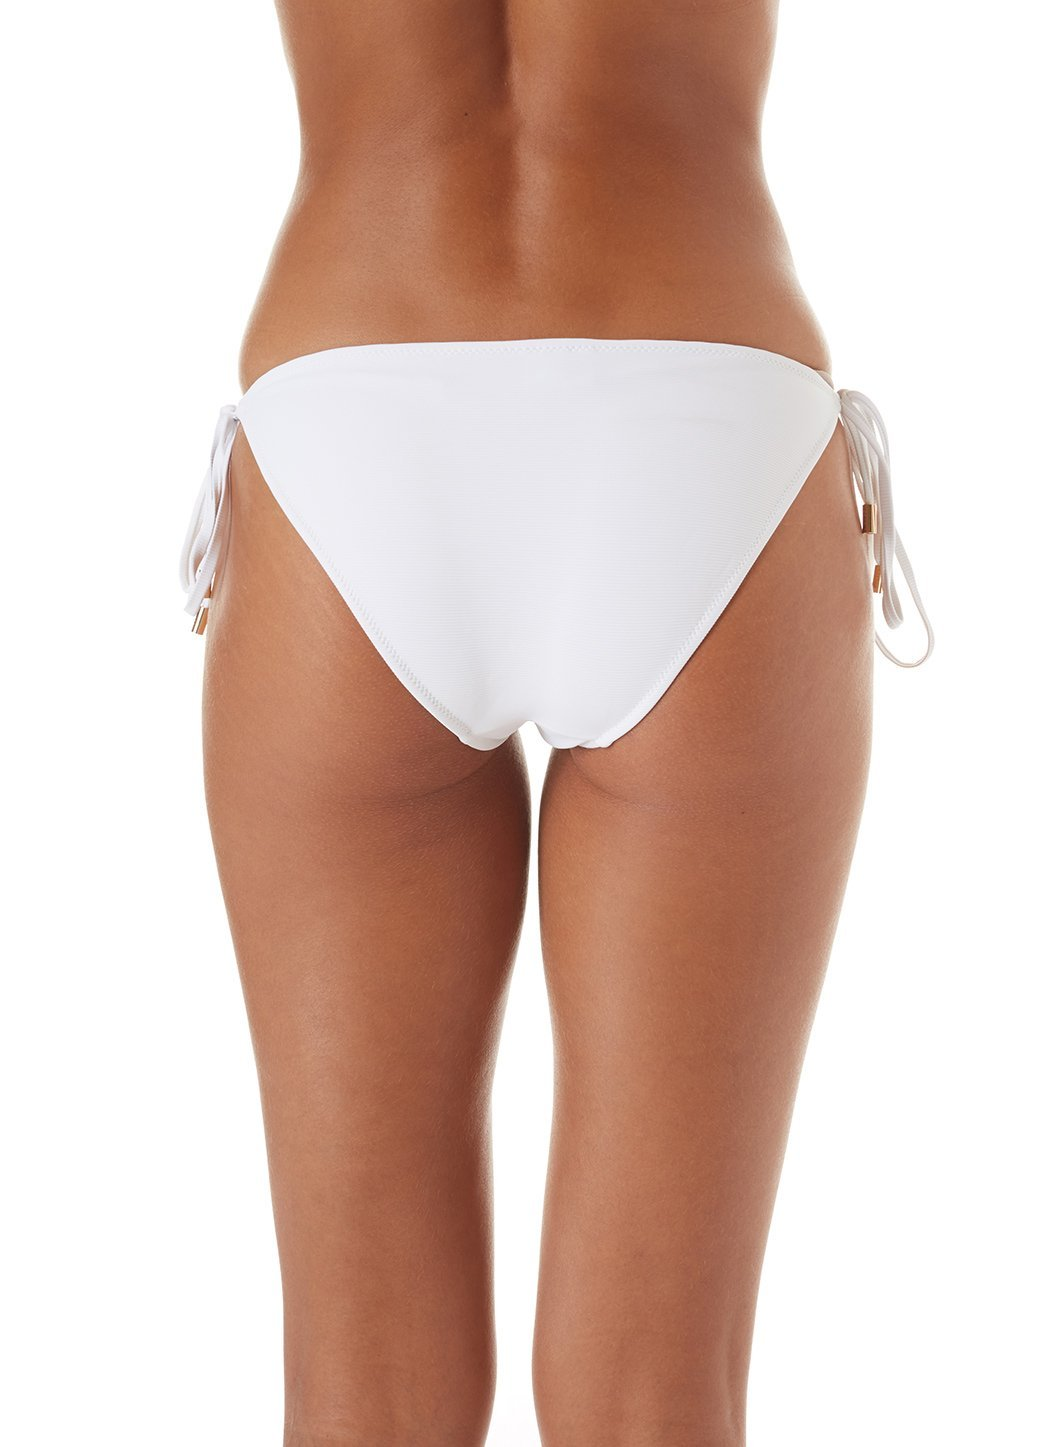 exclusive cancun bikini bottoms white ribbed 2019 B